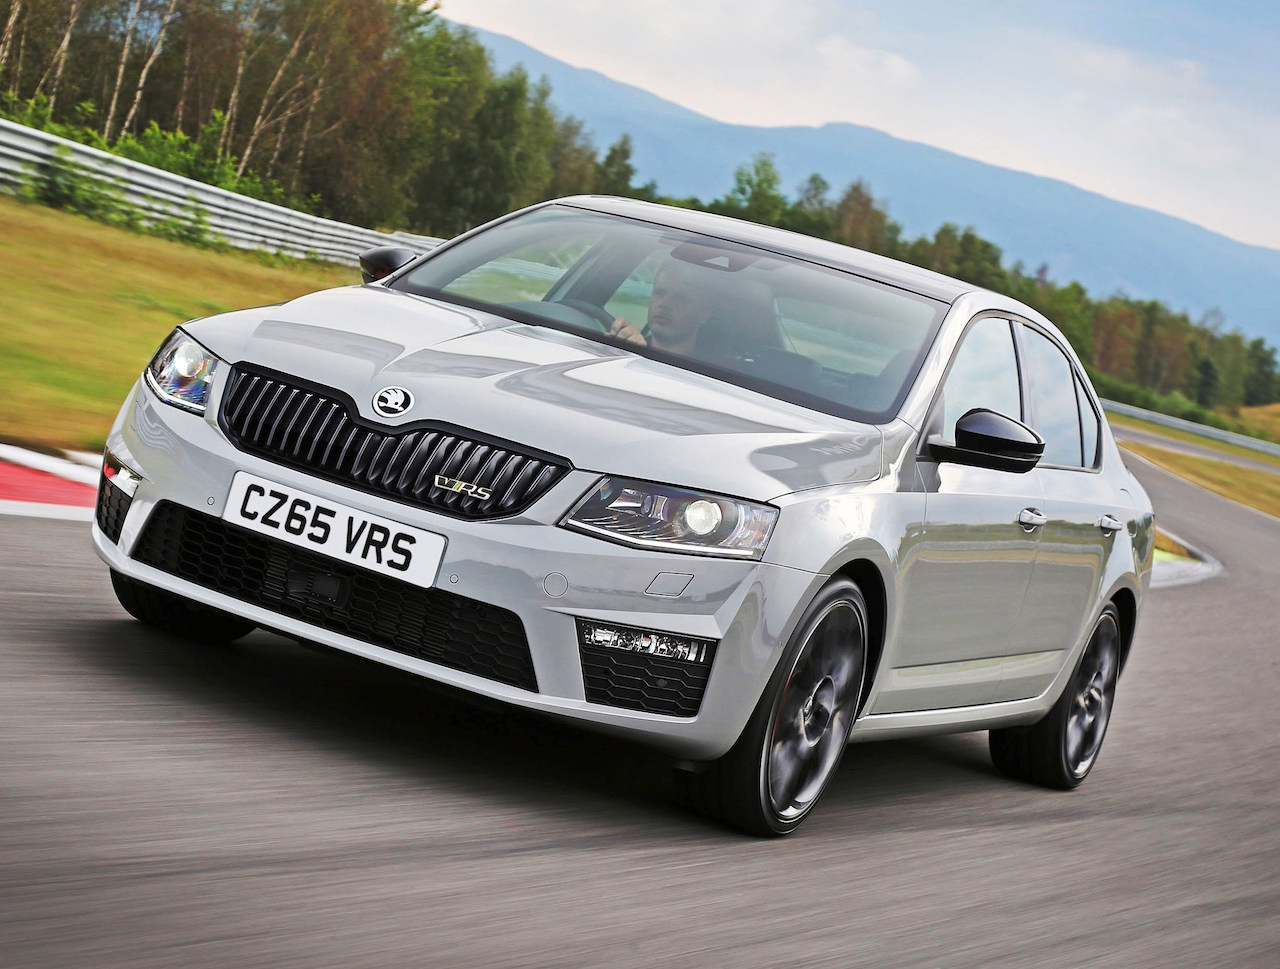 latest skoda octavia vrs first impressions and skoda news wheels alive. Black Bedroom Furniture Sets. Home Design Ideas